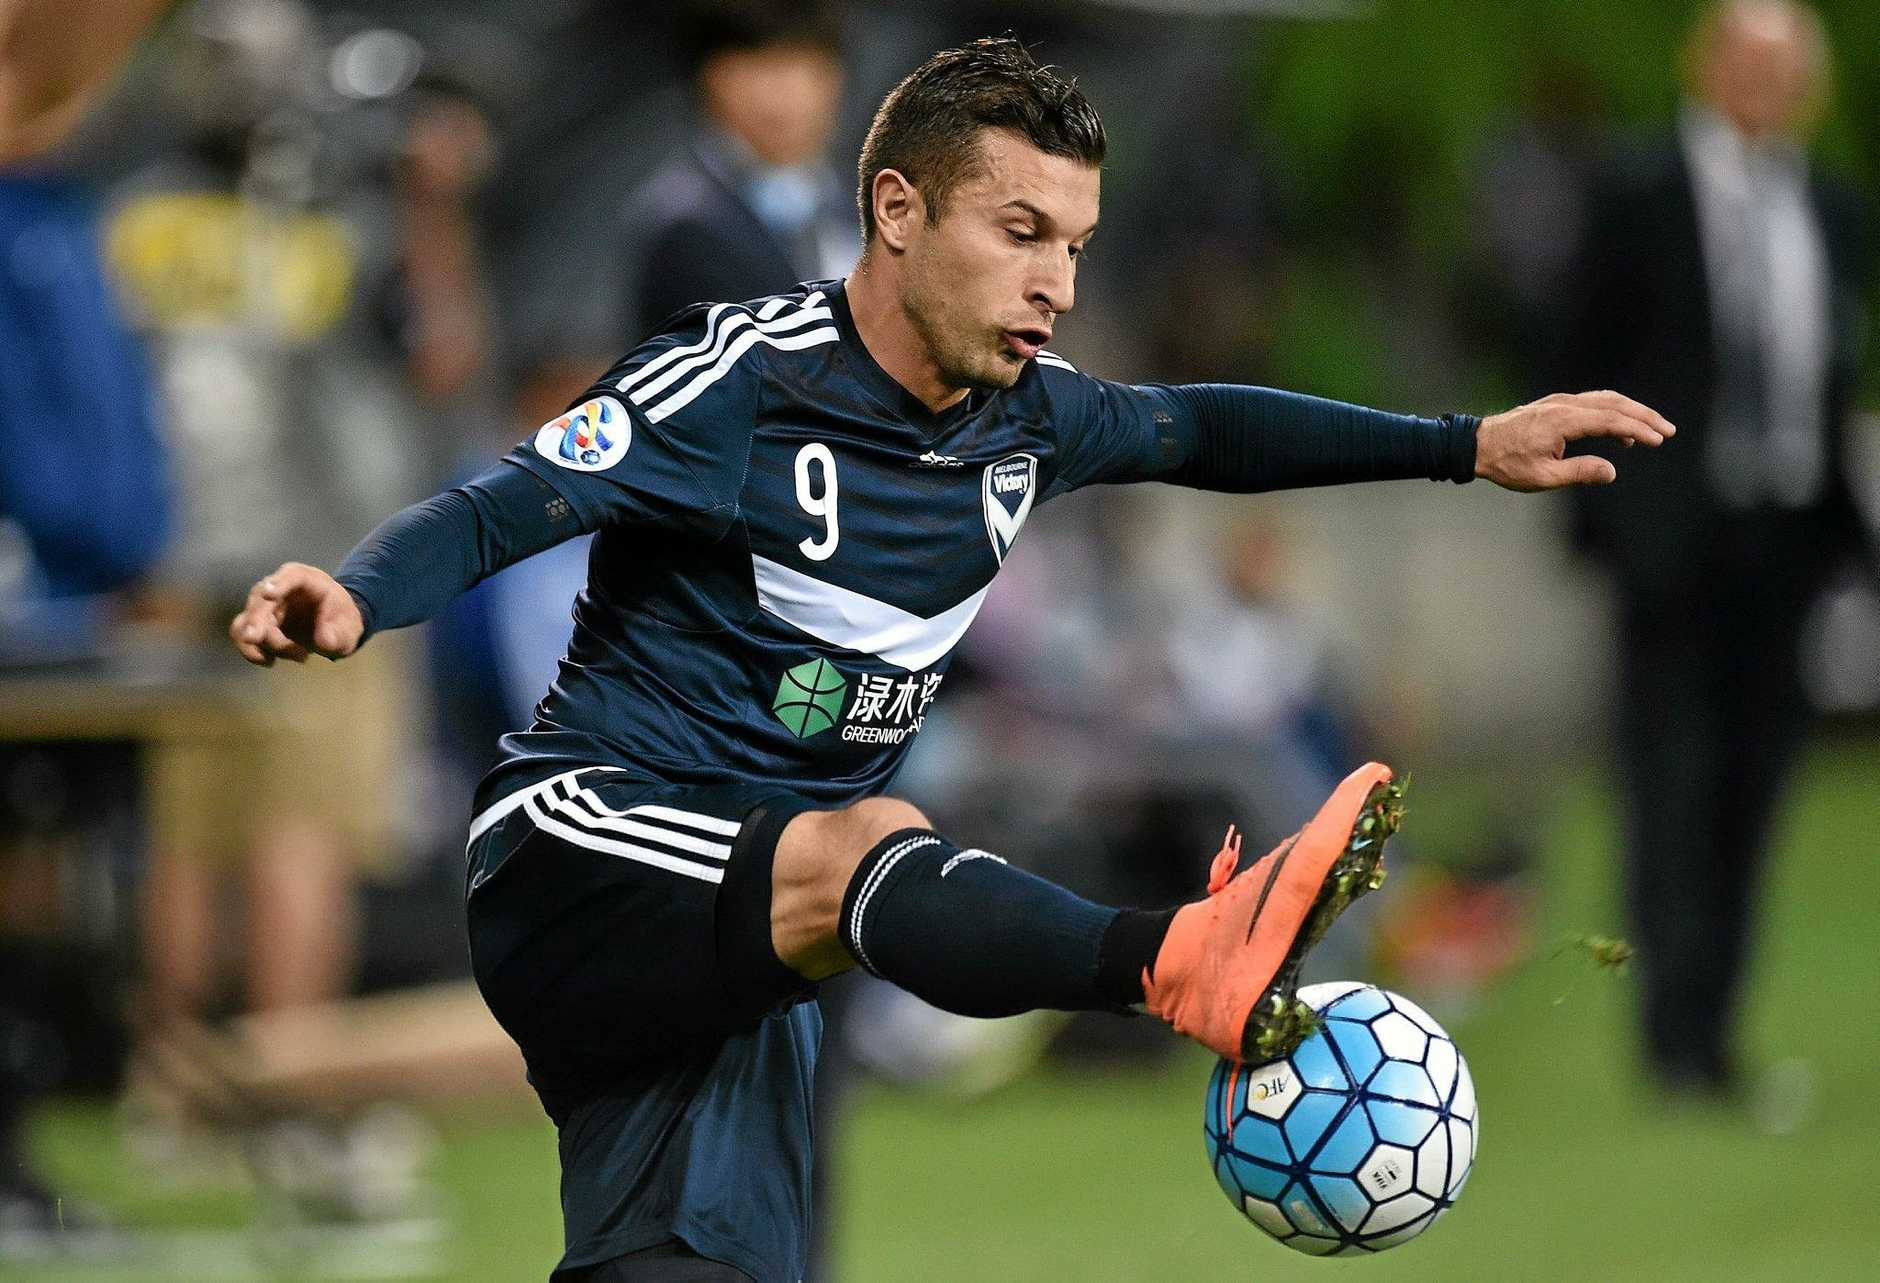 Melbourne Victory player Kosta Barbarouses.